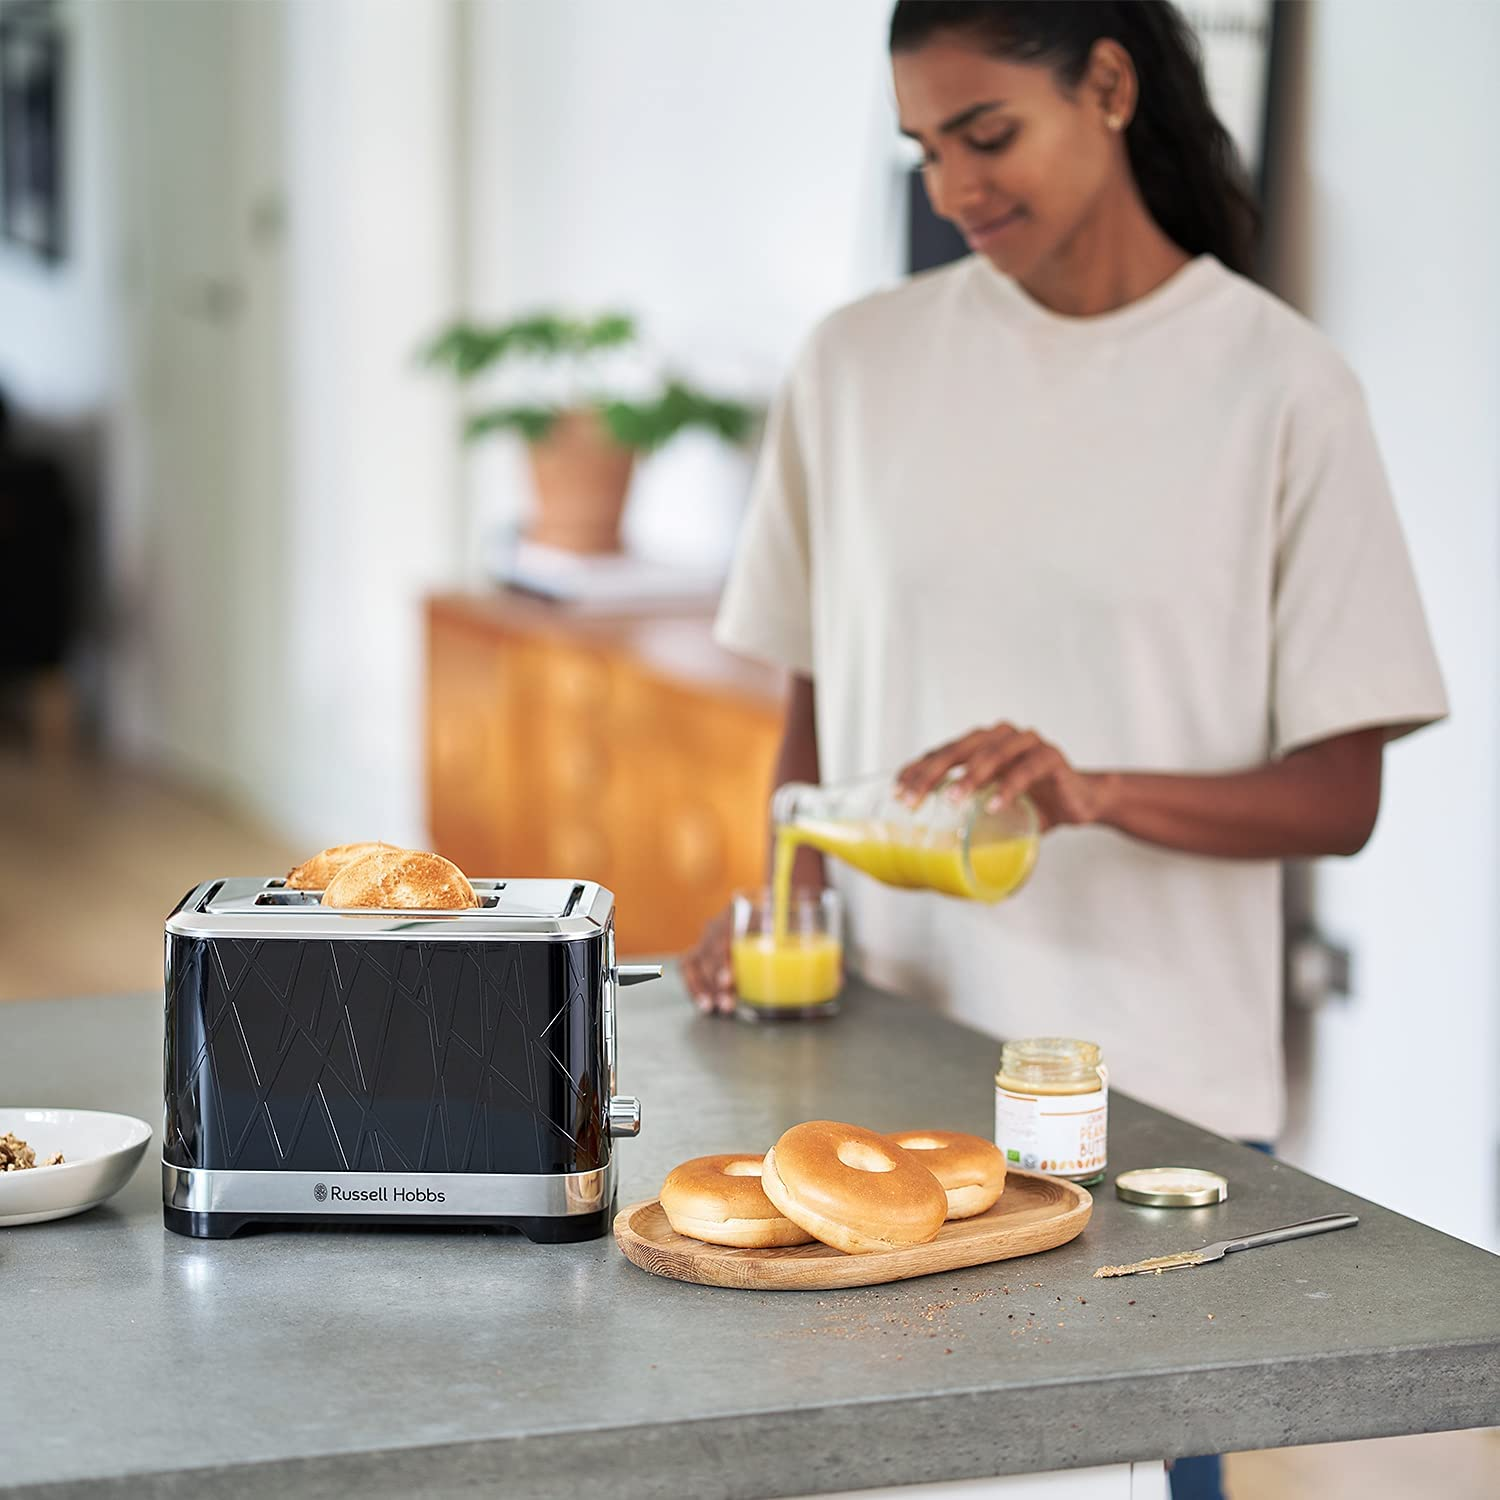 russell hobbs 2 slice toaster review